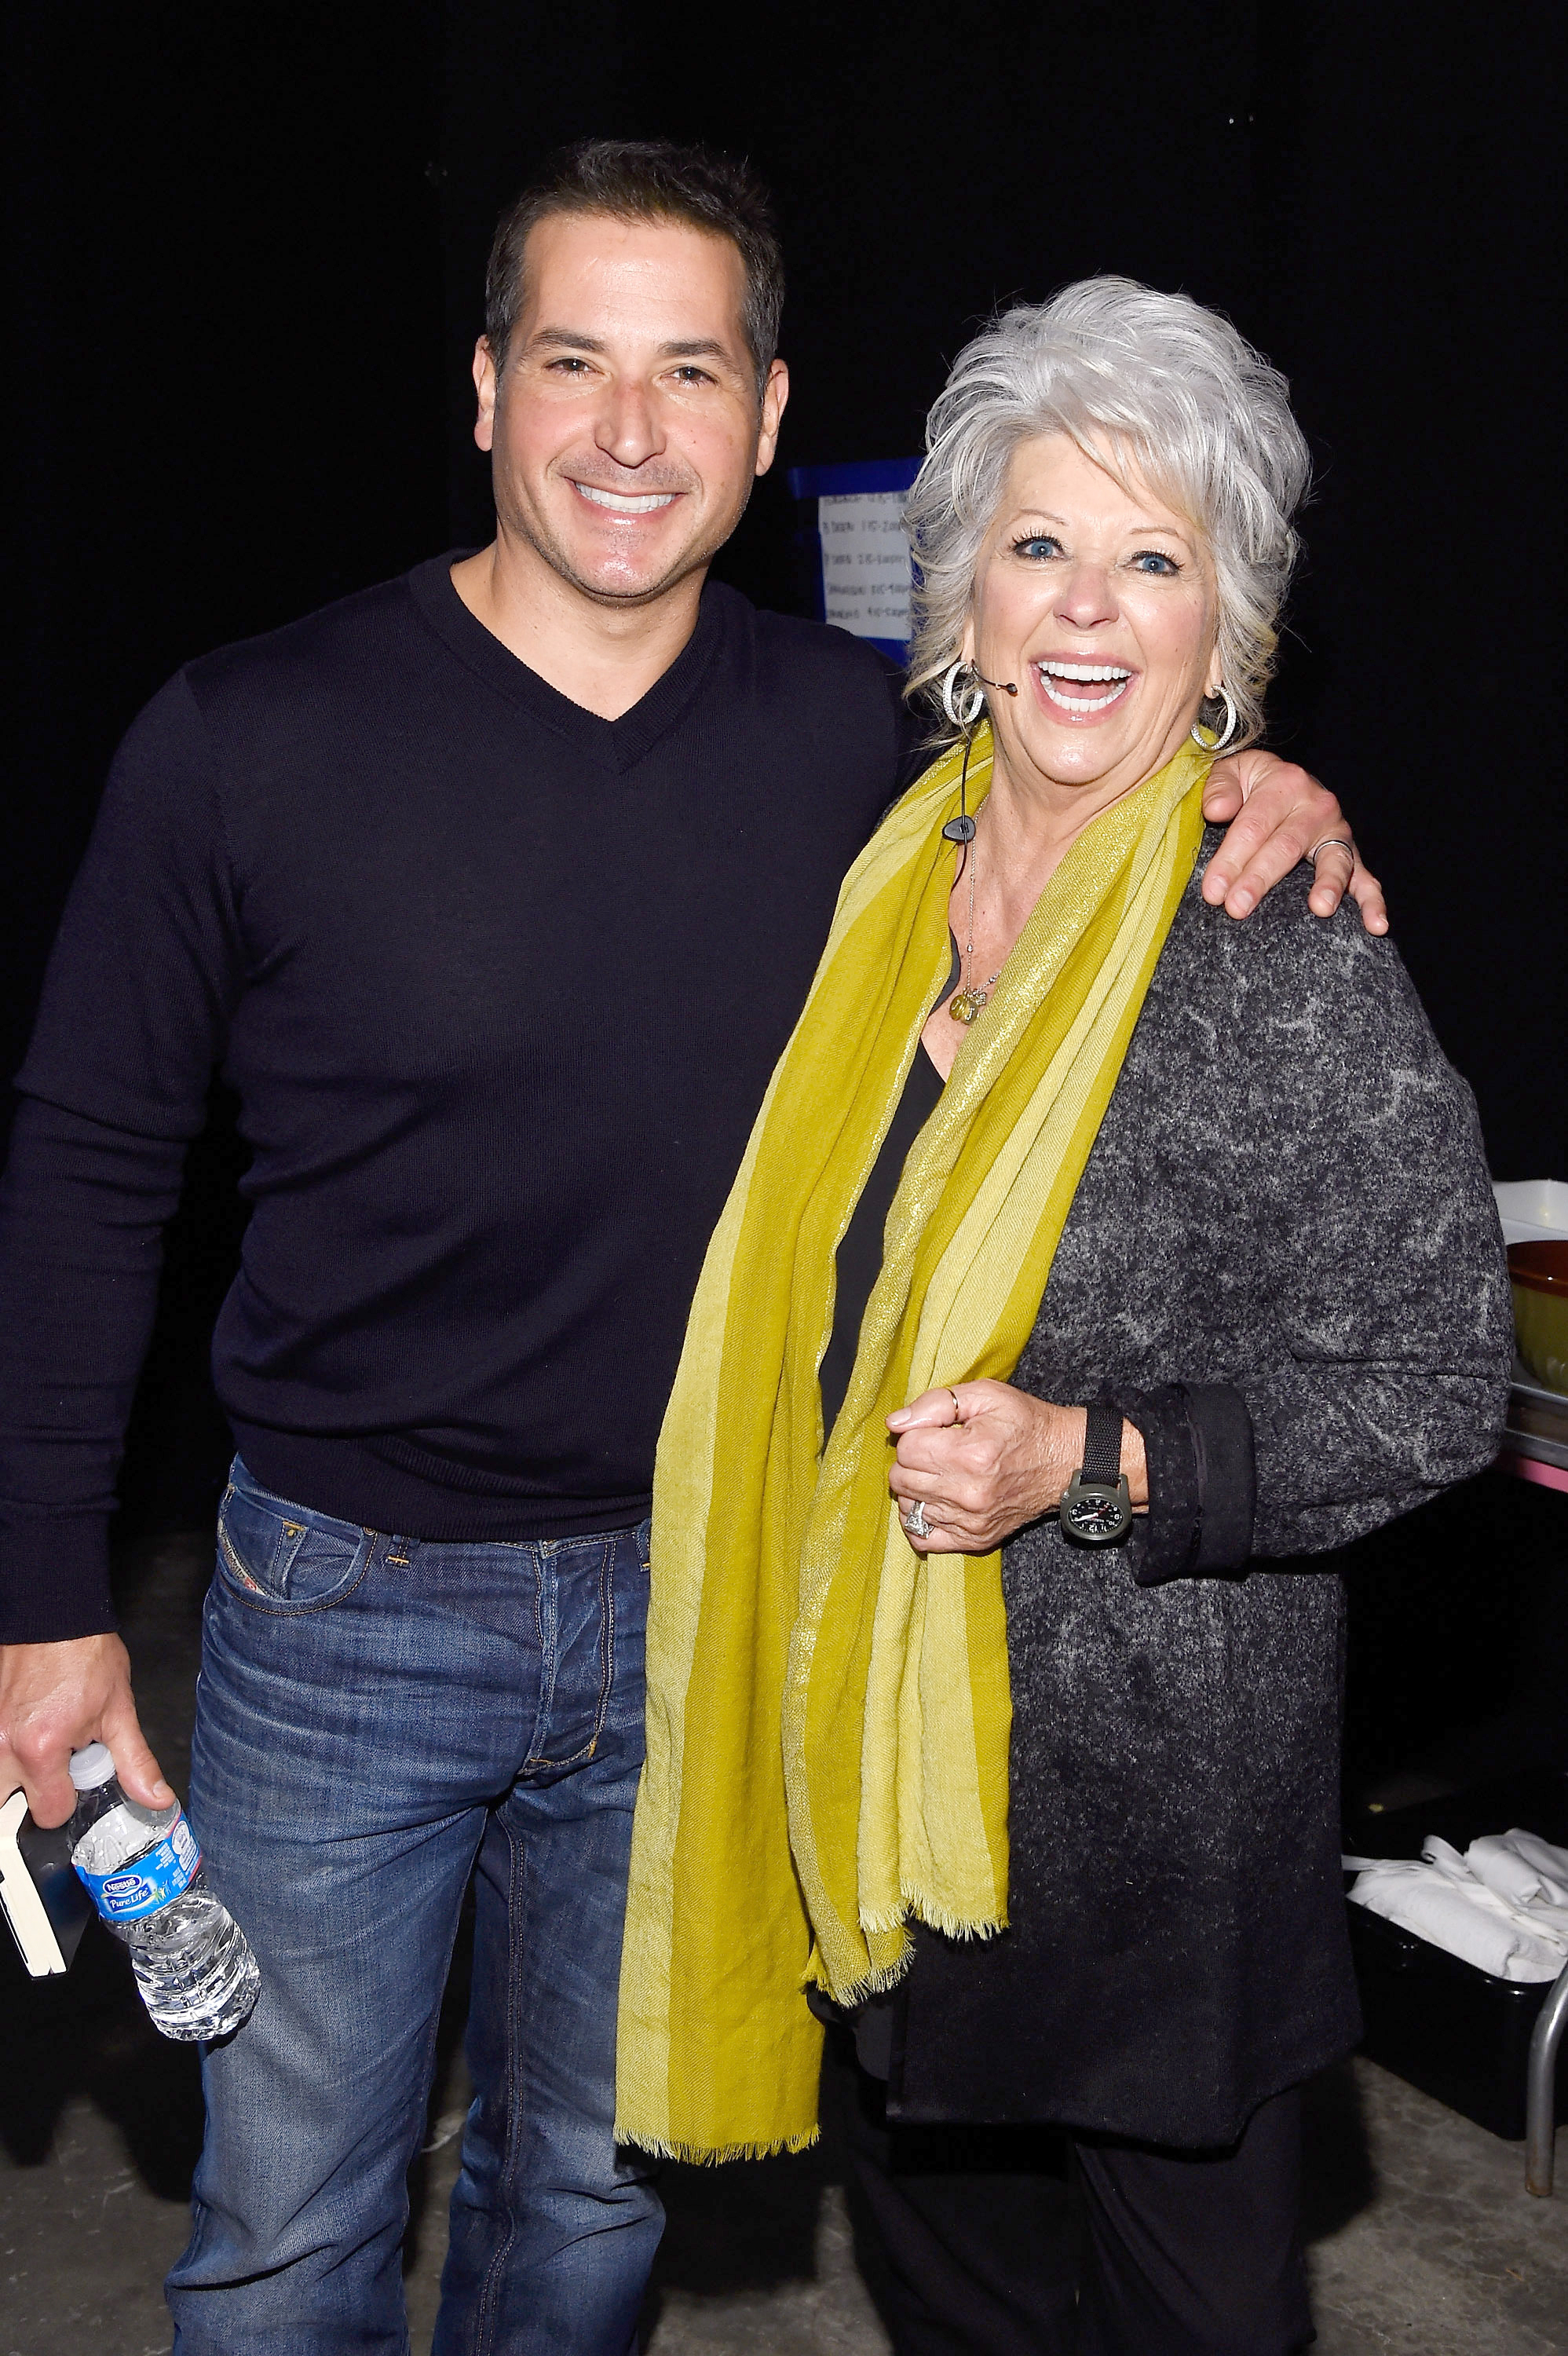 Chefs Bobby Deen and Paula Deen pose backstage during the Food Network New York City Wine & Food Festival at Pier 94 on October 19, 2014 in New York City.